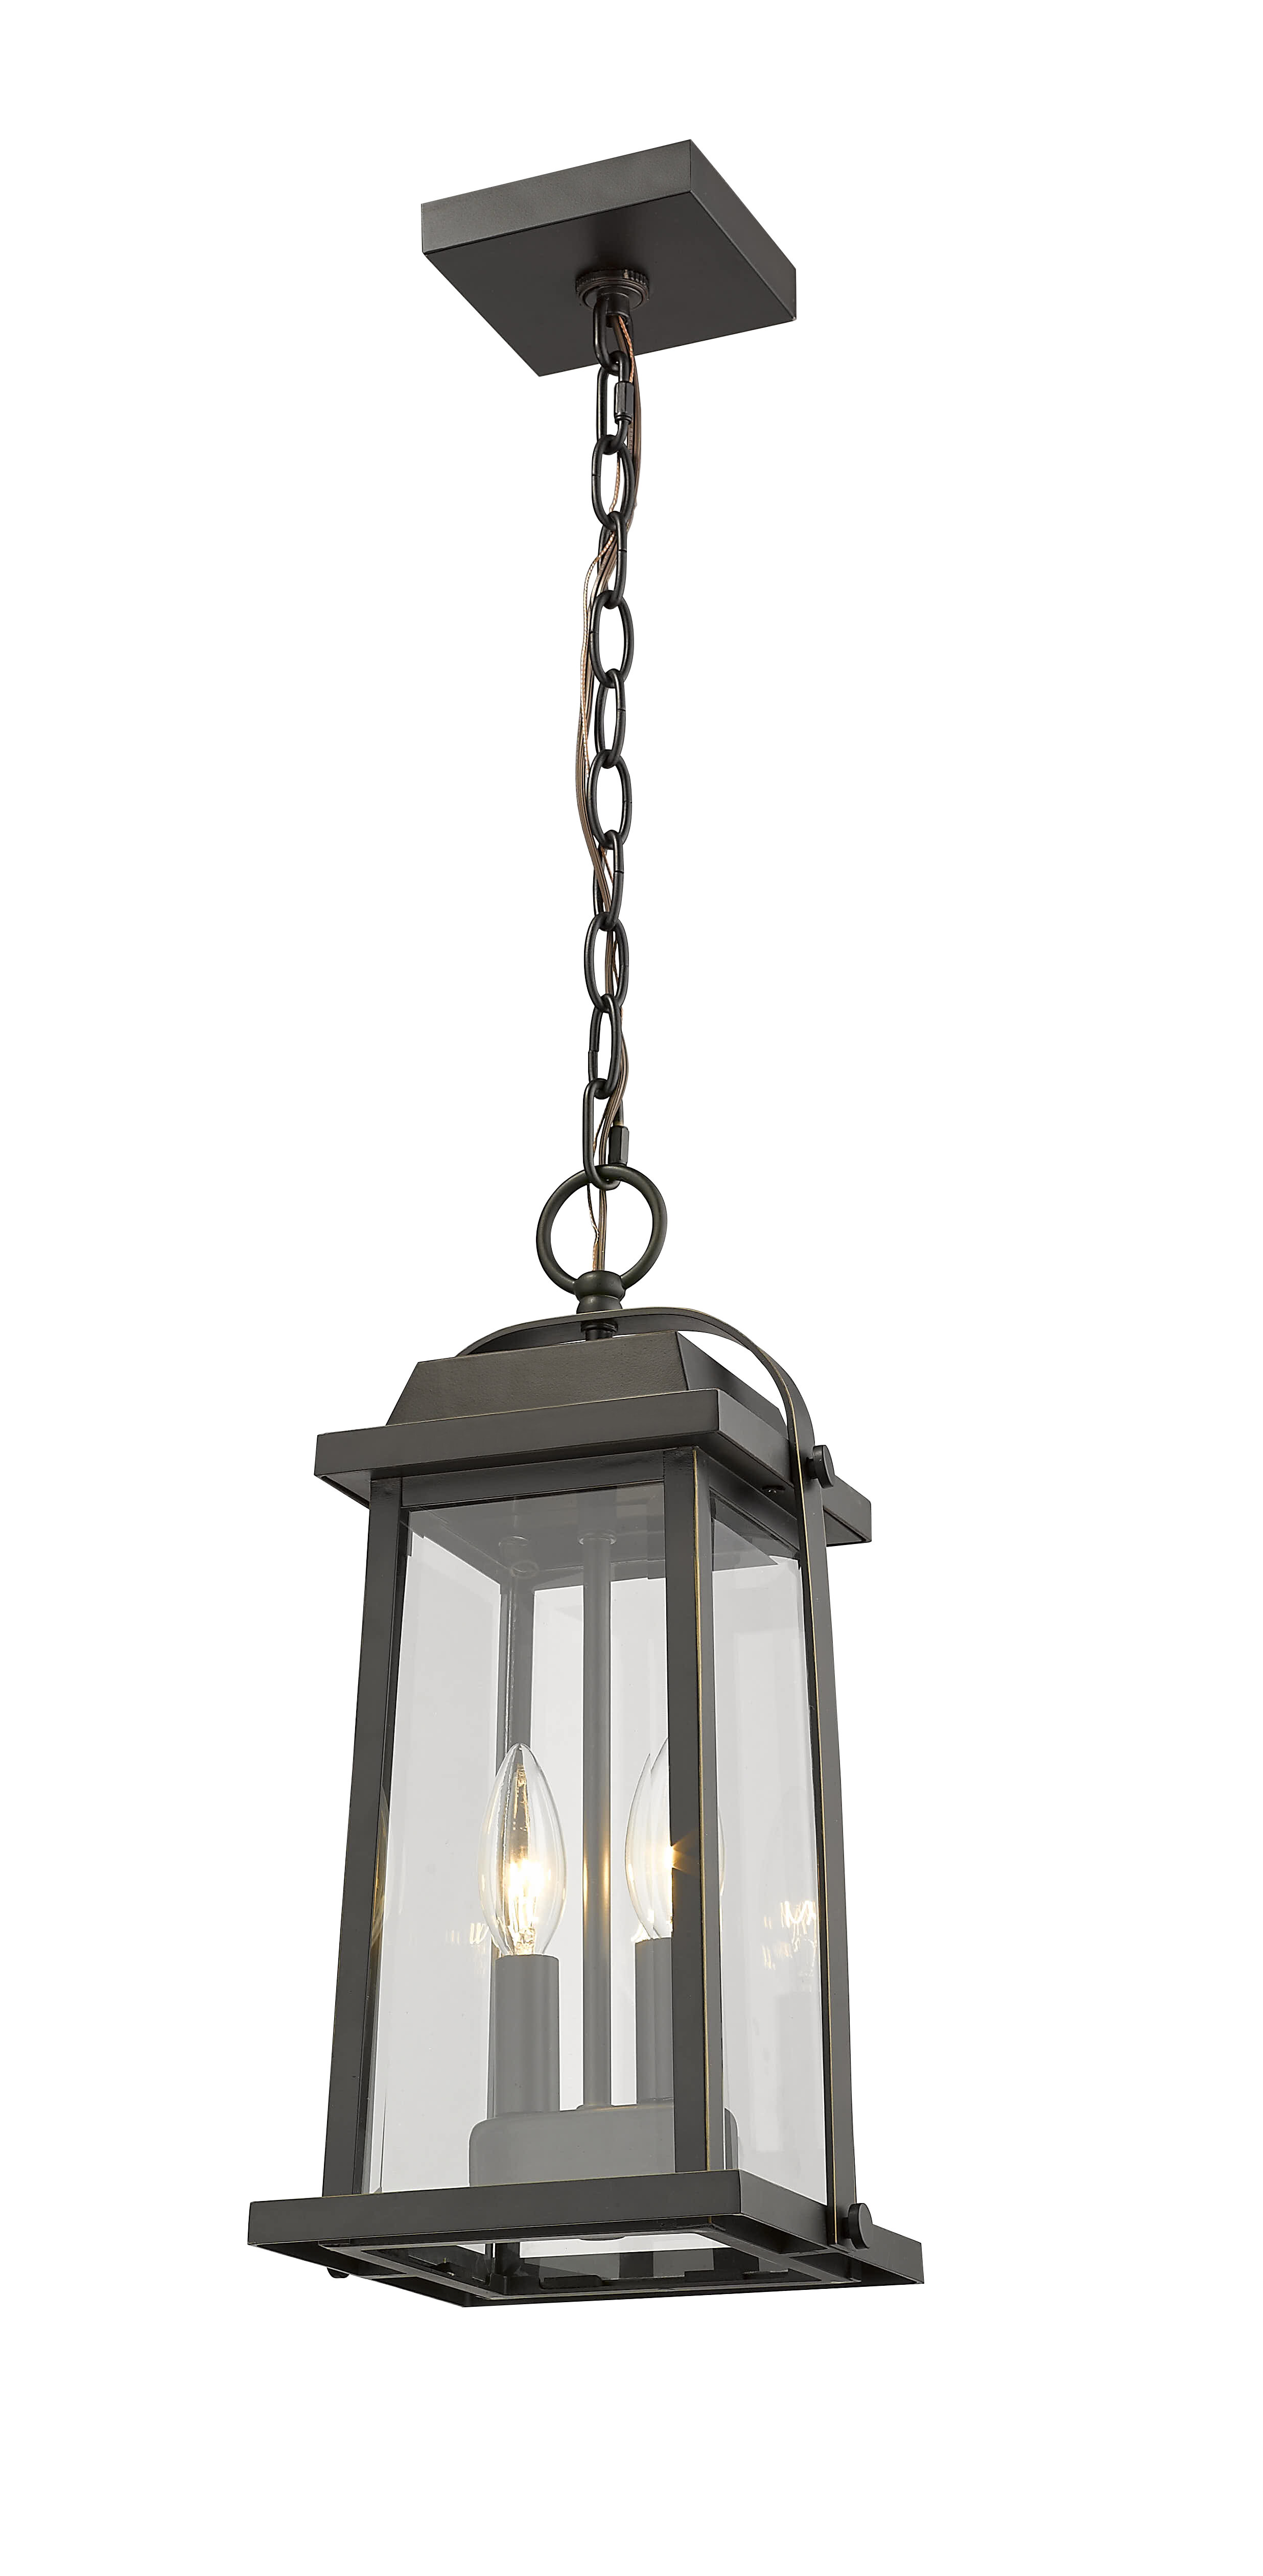 2 Light Oil Rubbed Bronze Outdoor Hanging Lights You Ll Love In 2021 Wayfair